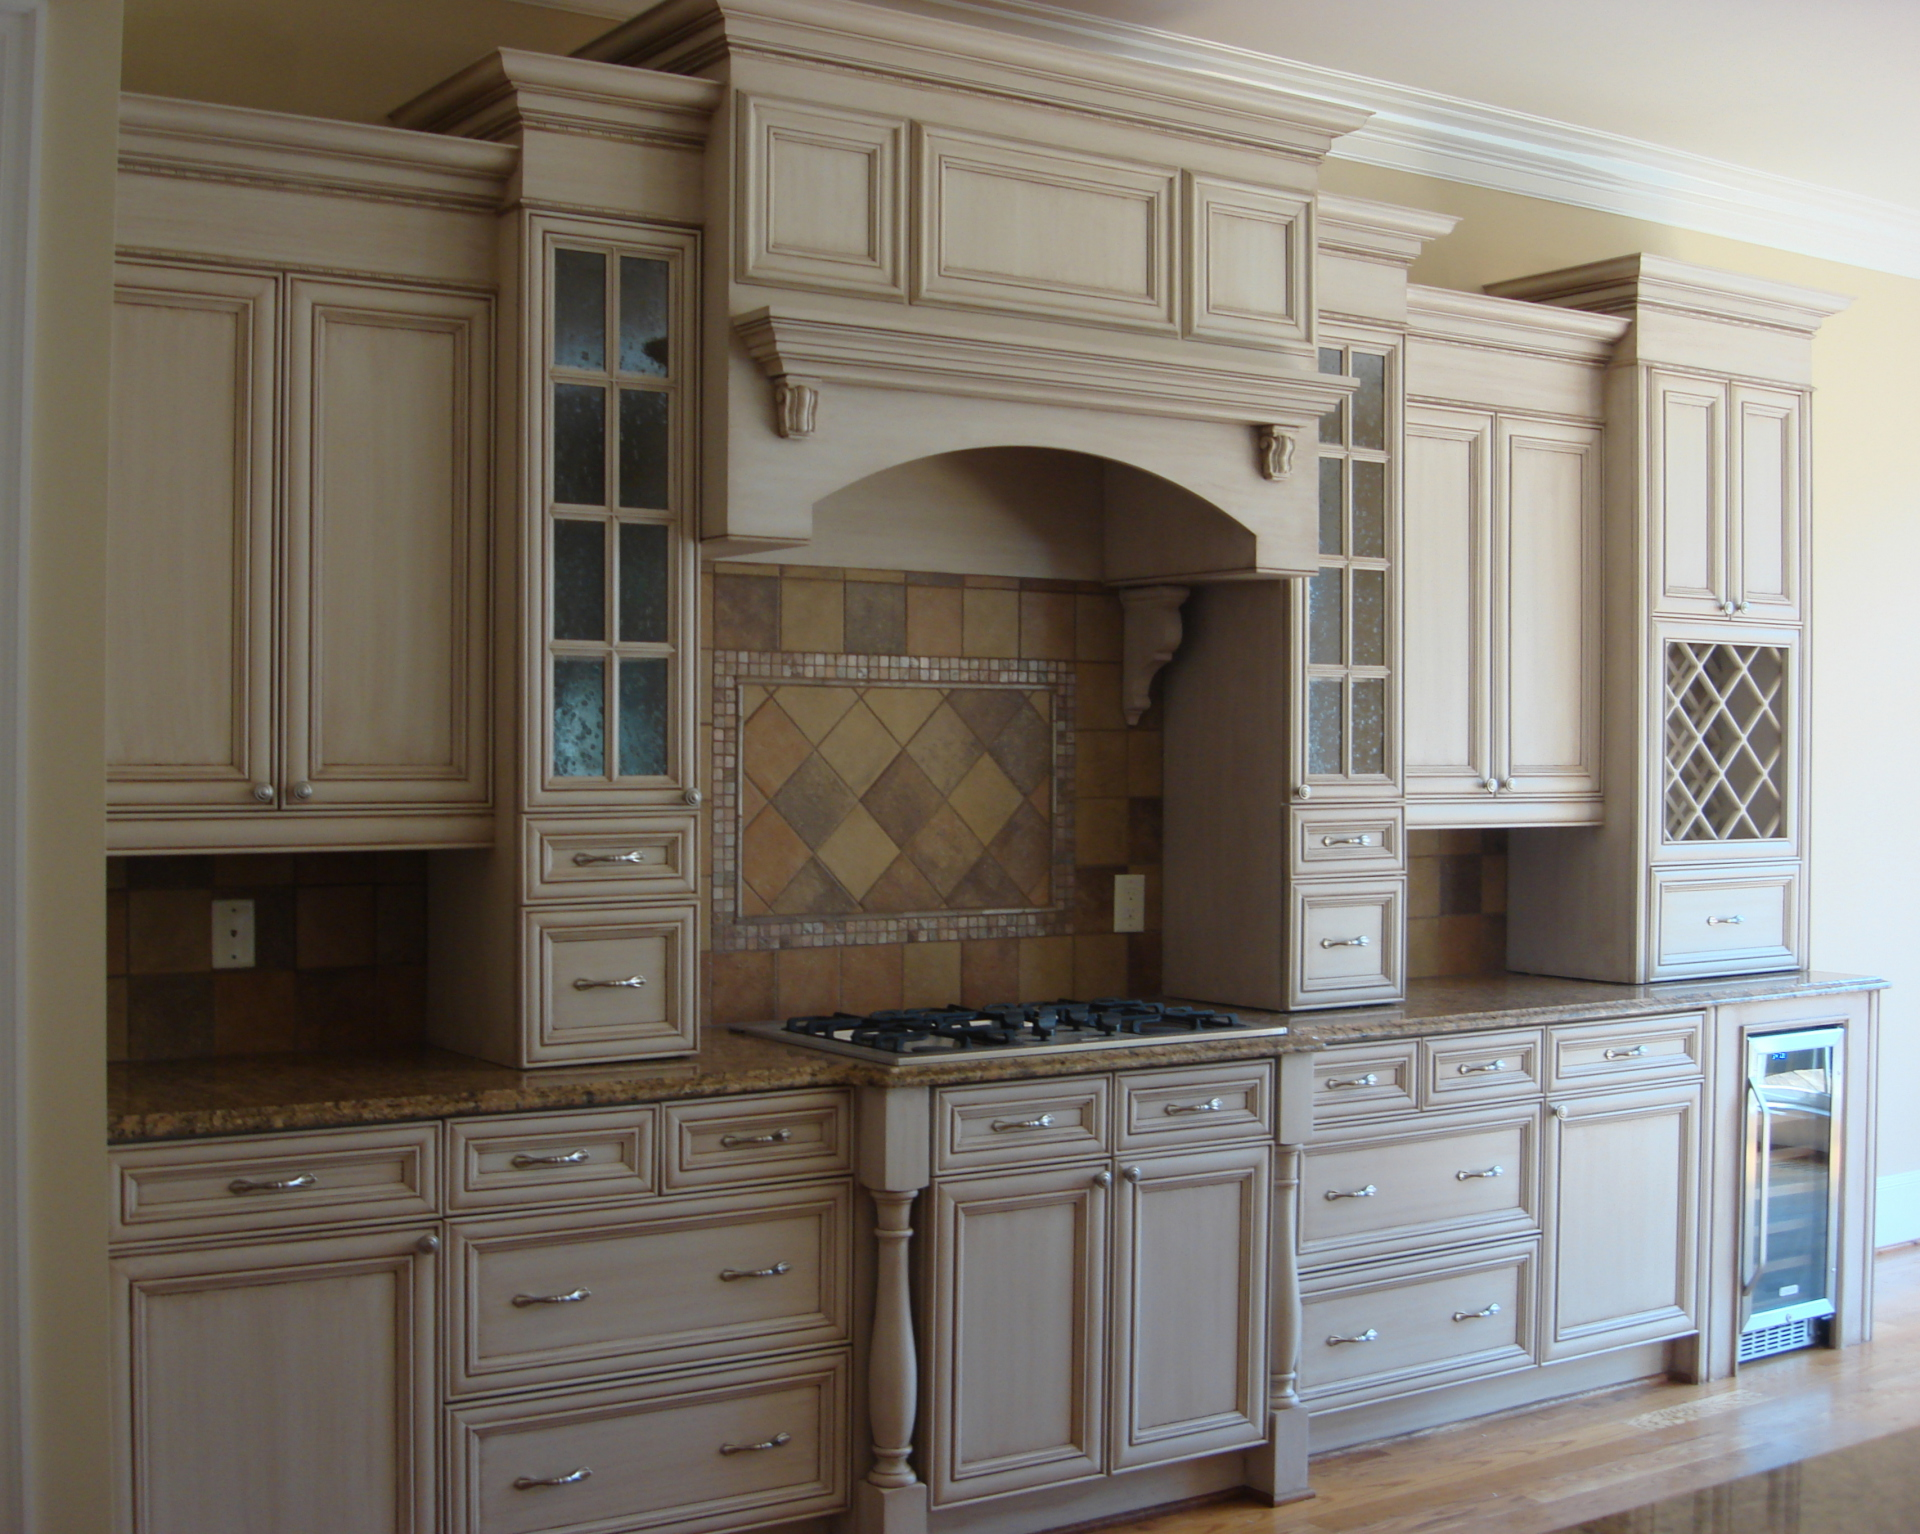 bedford painted glazed kitchen cabinets  faux finish decorative paint raleigh